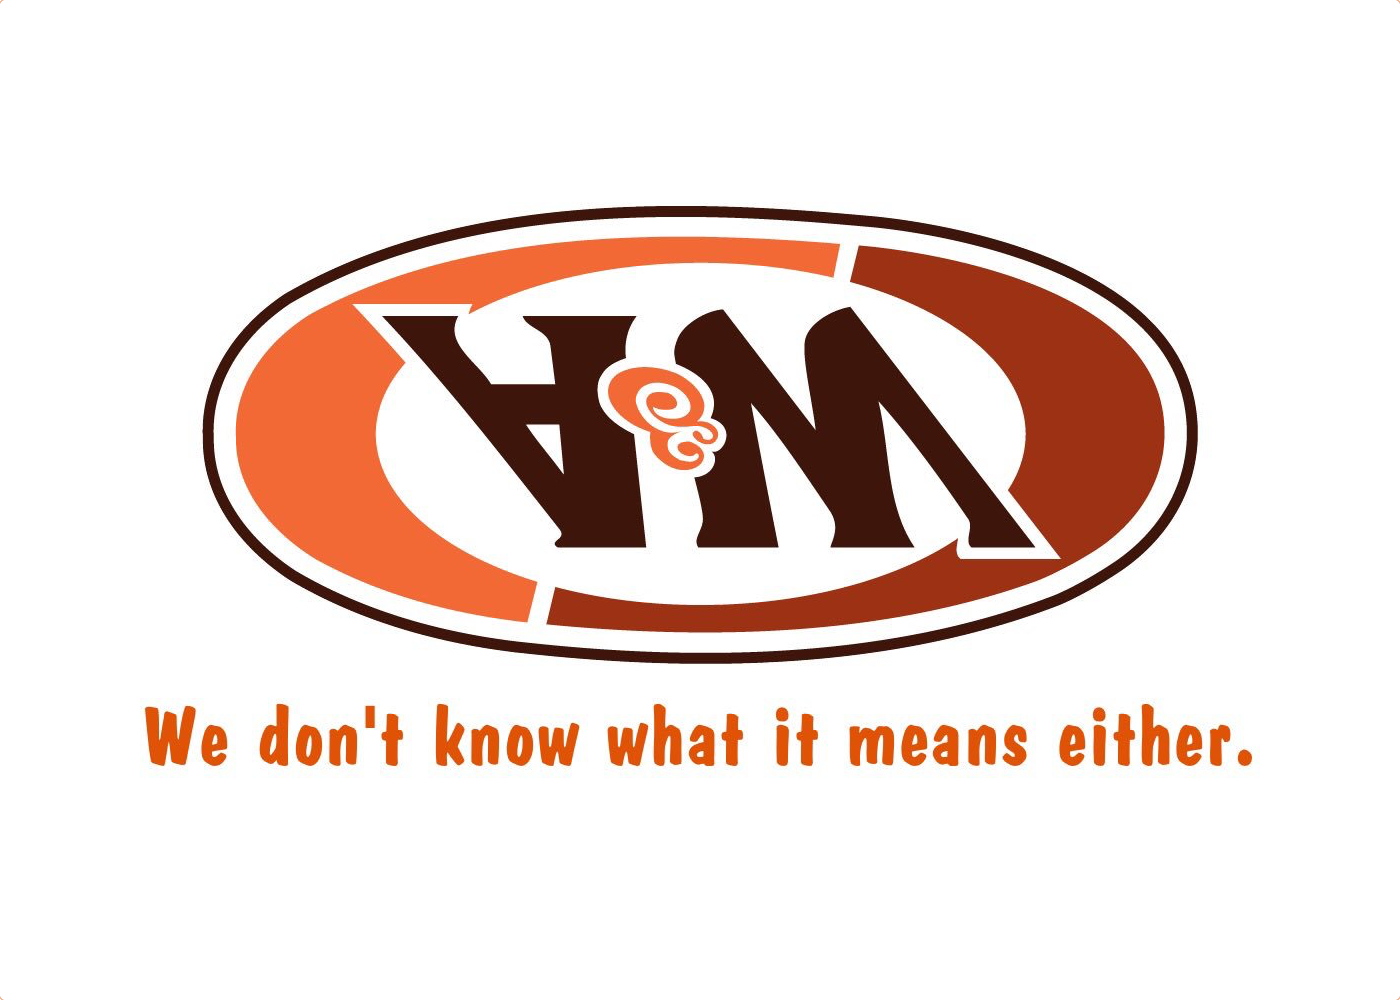 Flipped version of the A&W Restaurants logo. Text underneath reads